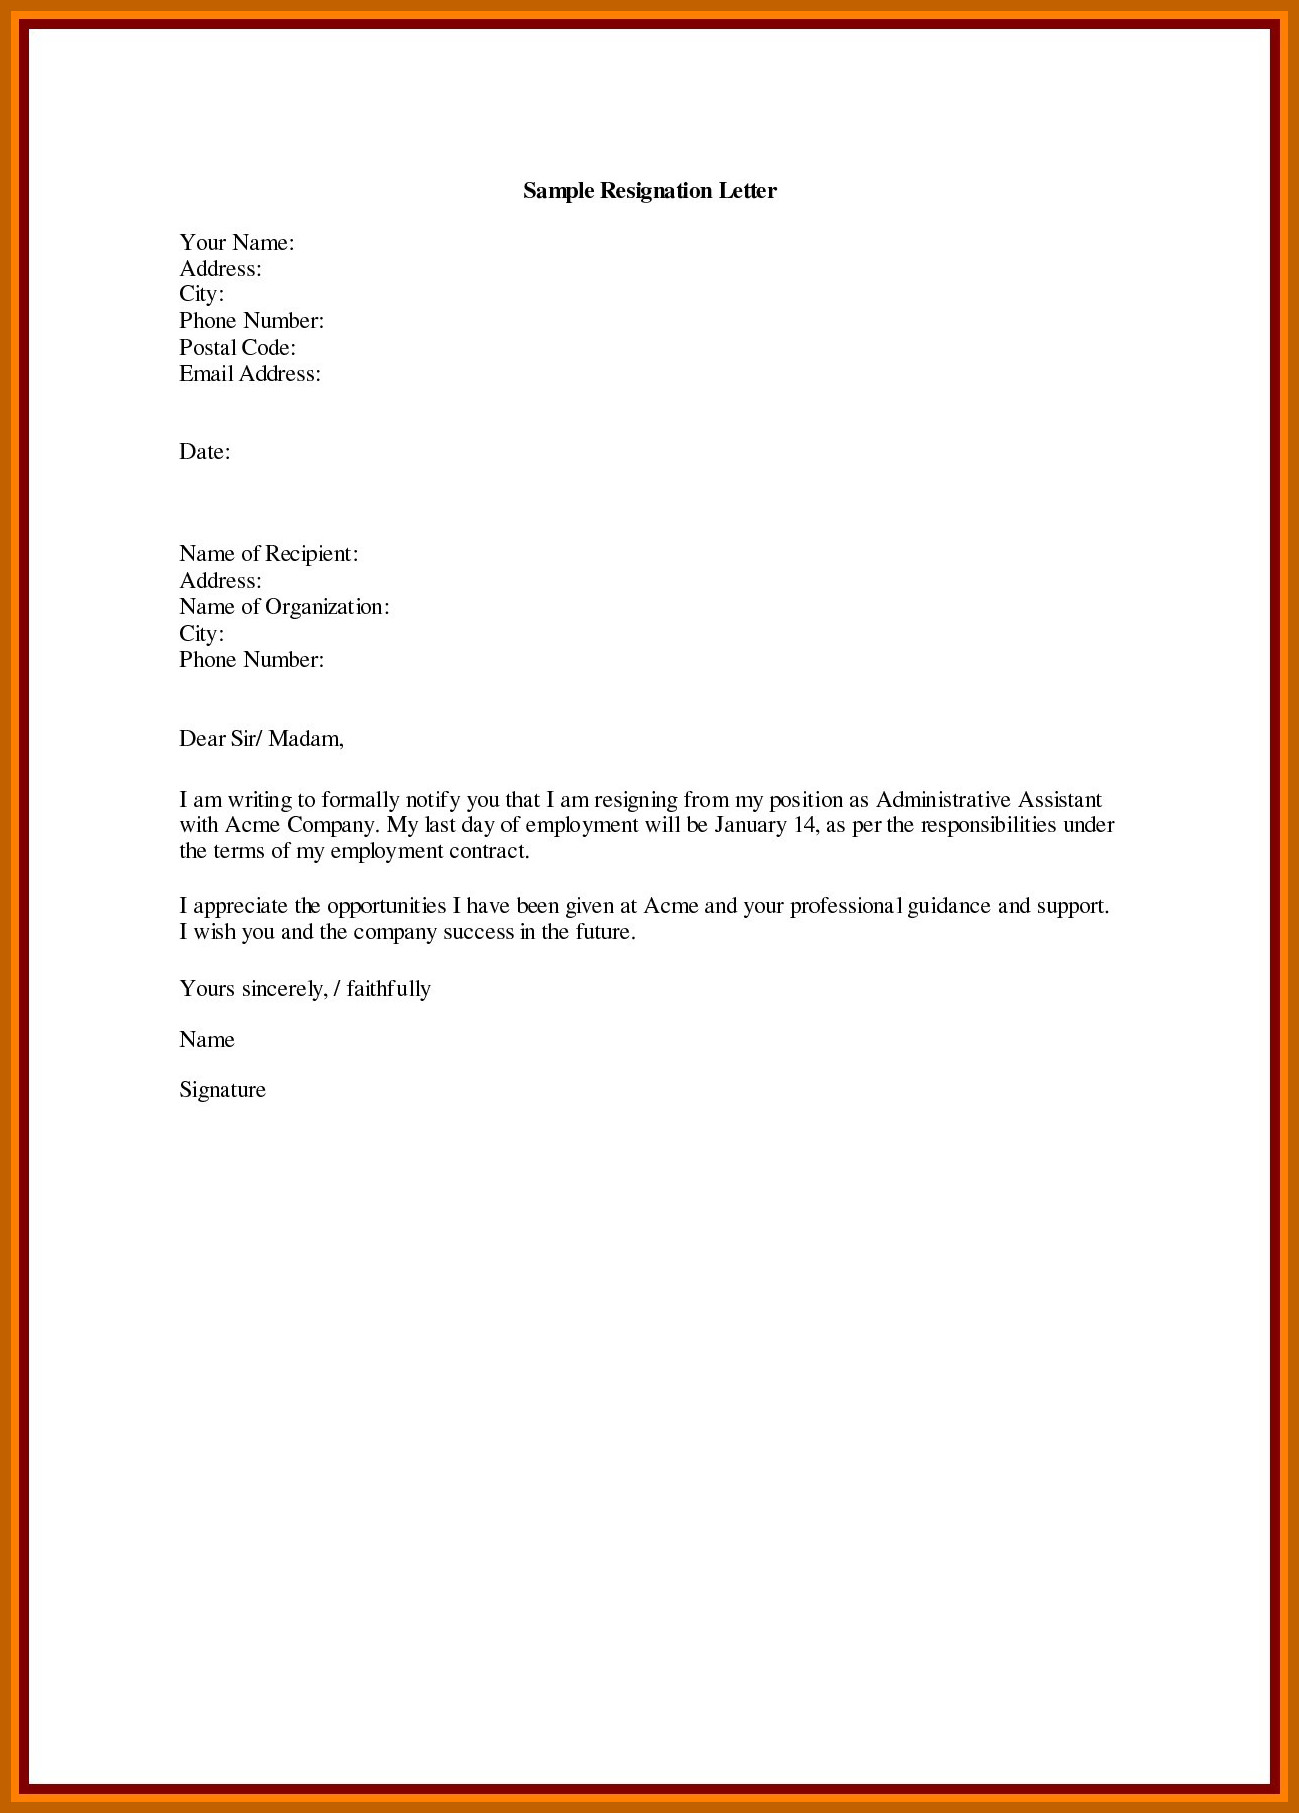 Resignation Letter Personal Reason 9 10 Sample Resignation Letter with Reason